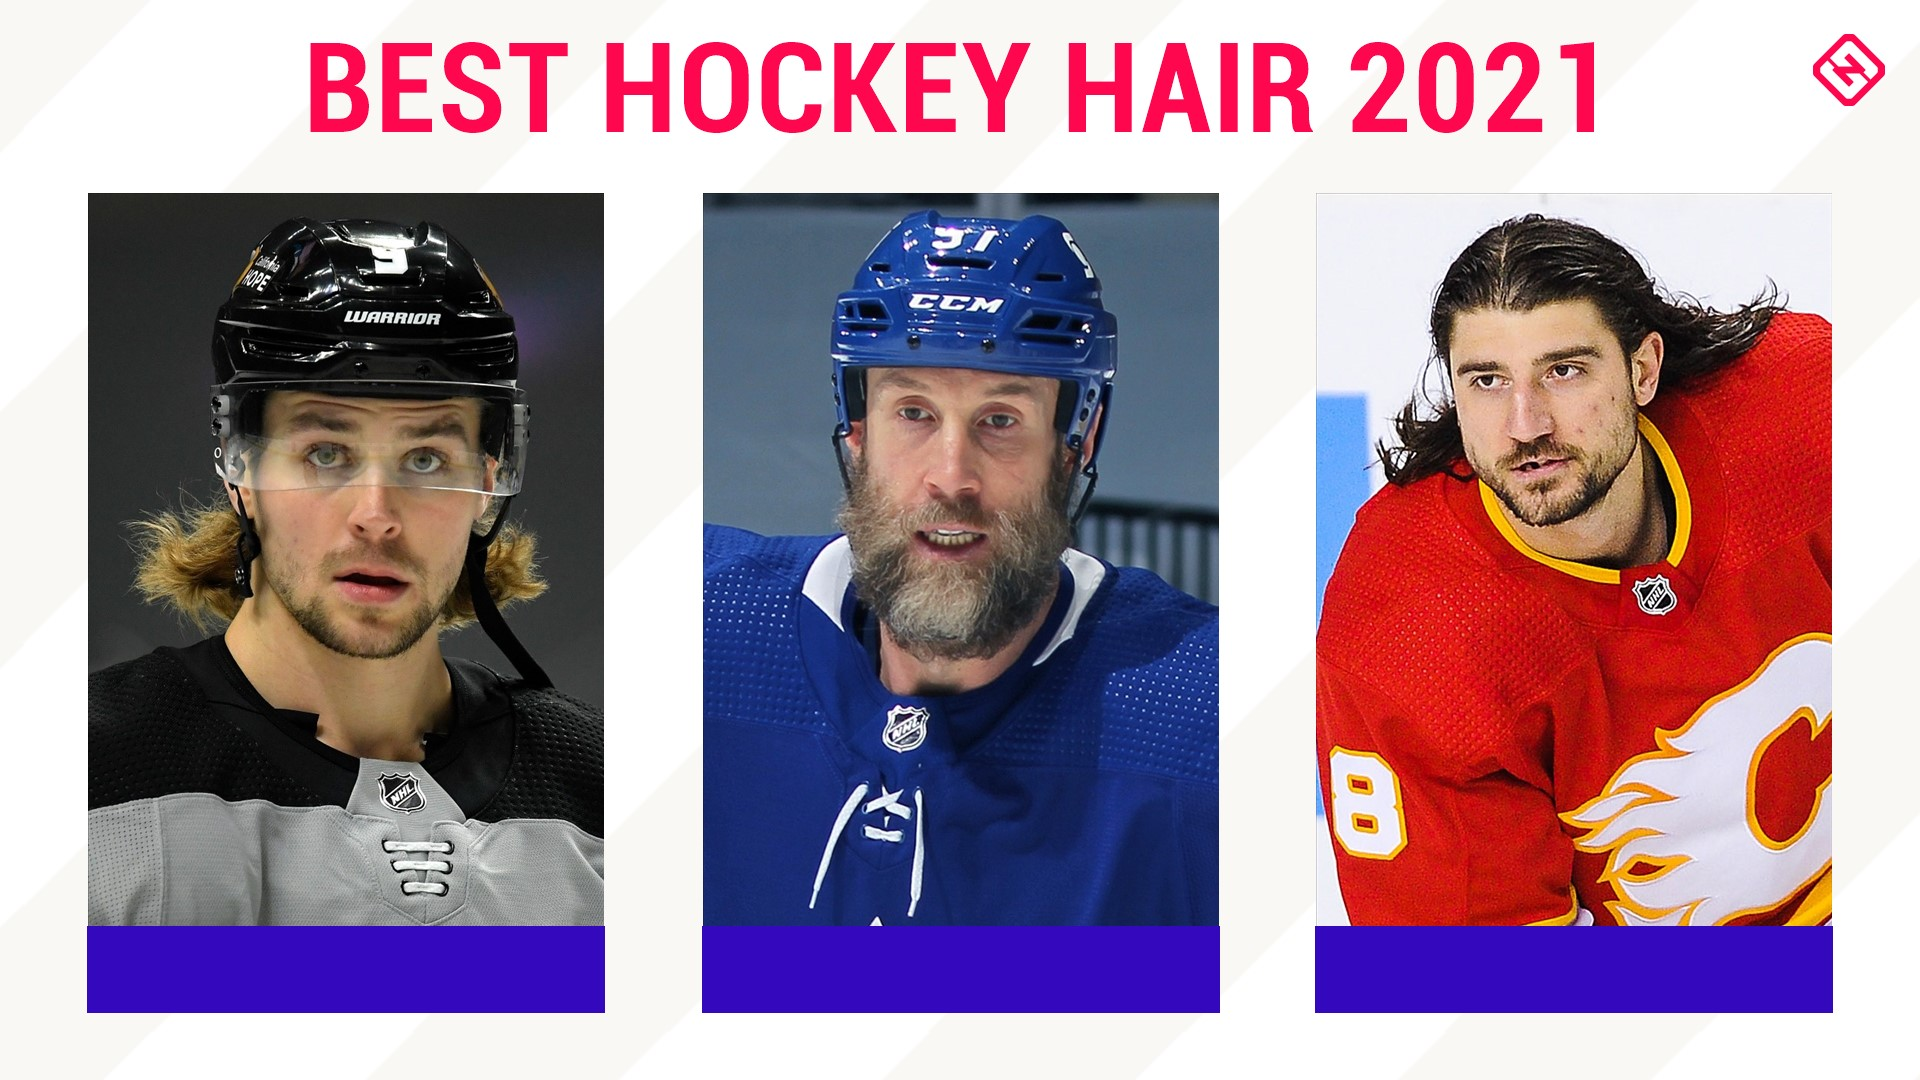 Hockey hair, 2021 edition: The NHL's best beards, mullets and more